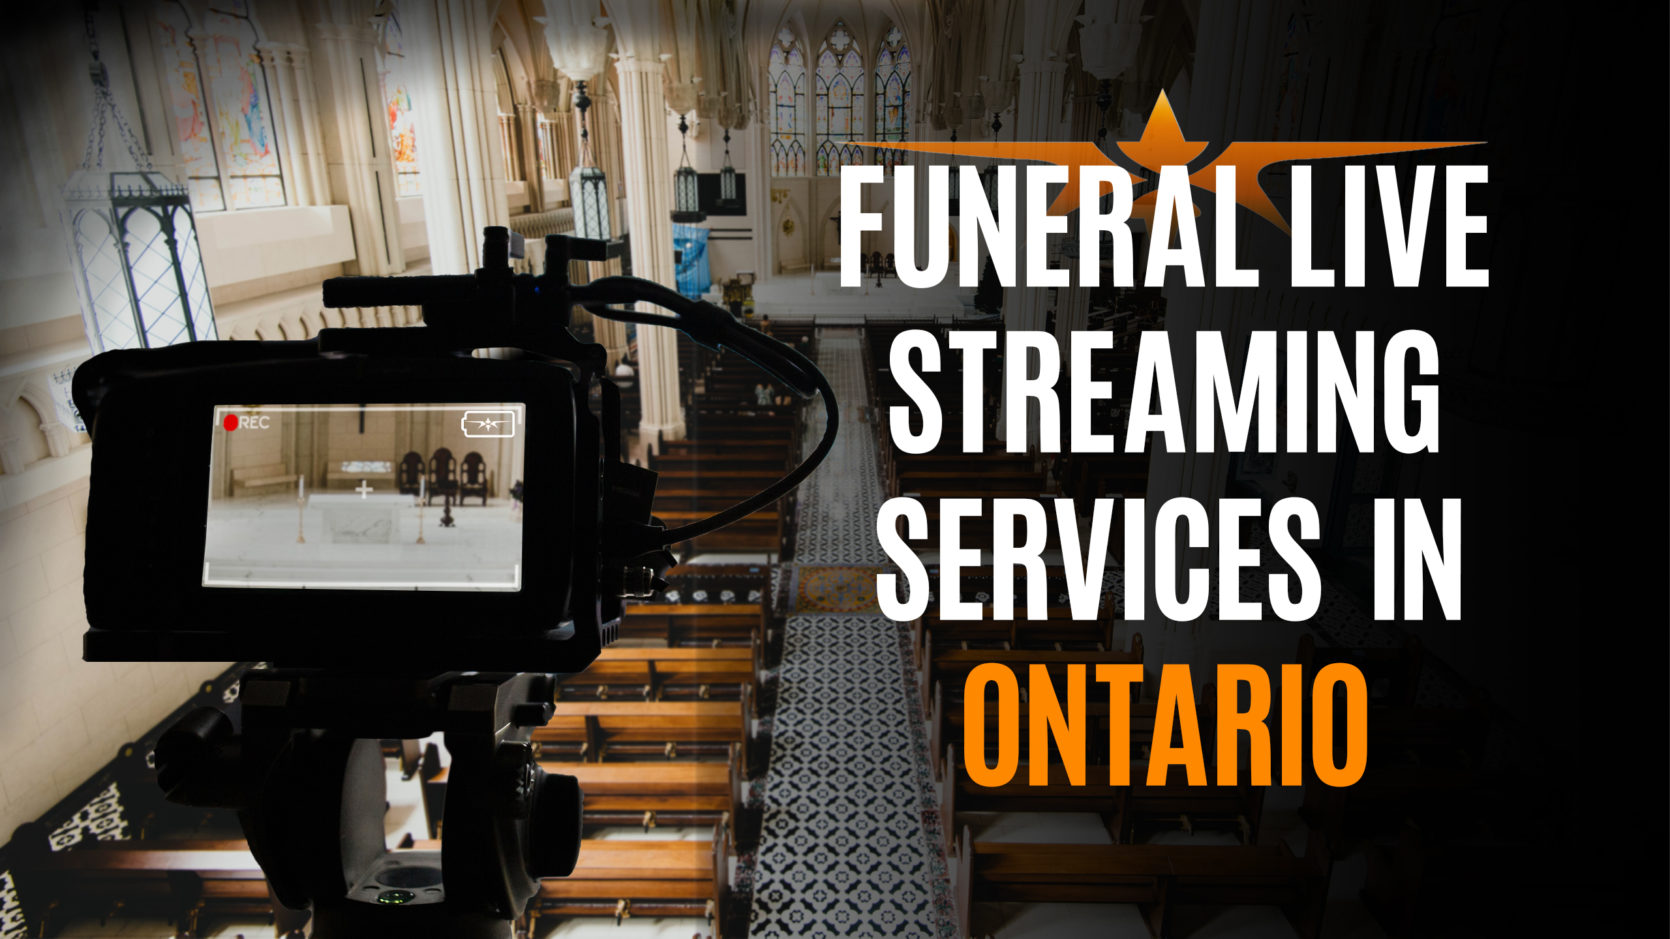 Funeral Live Streaming Services in Ontario